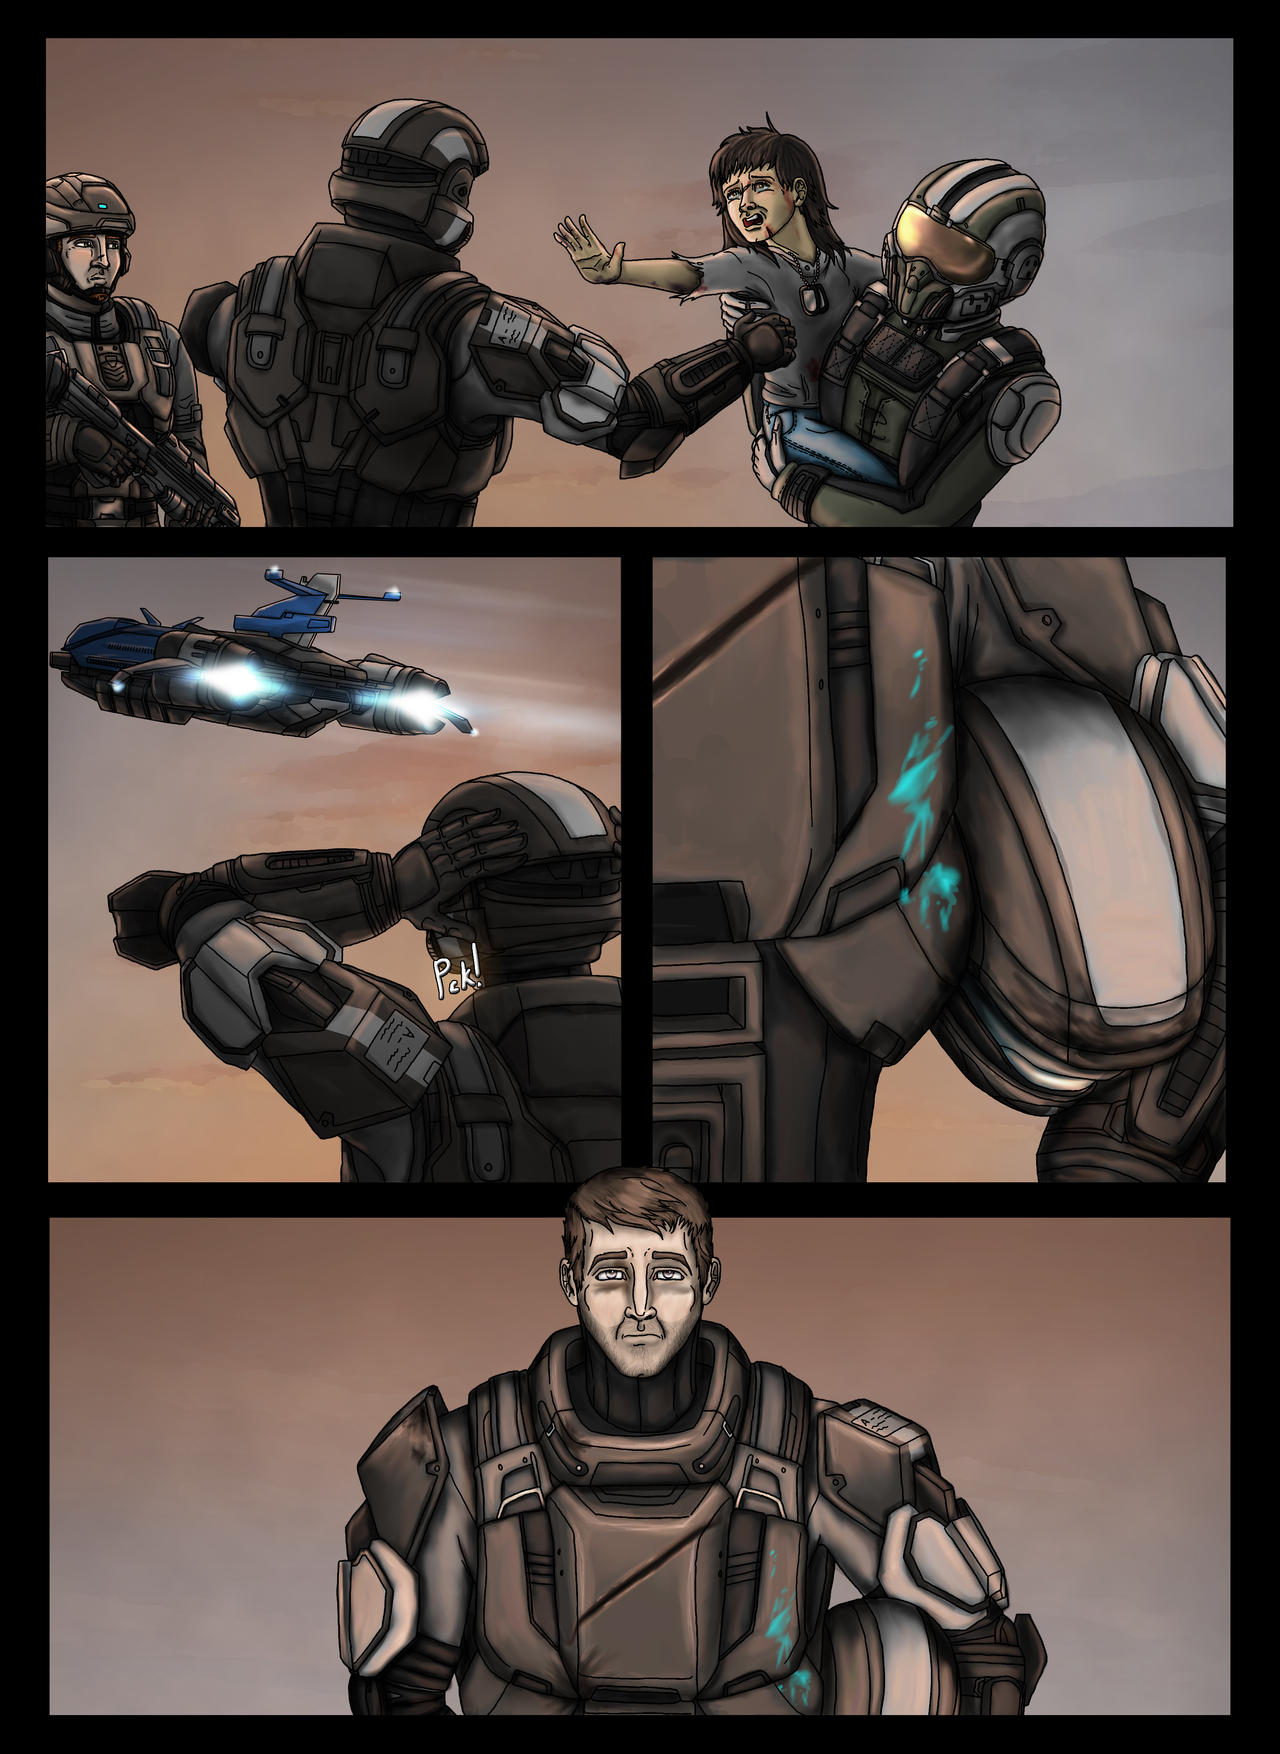 halo__dogtag_origins_page_5_by_guyver89-